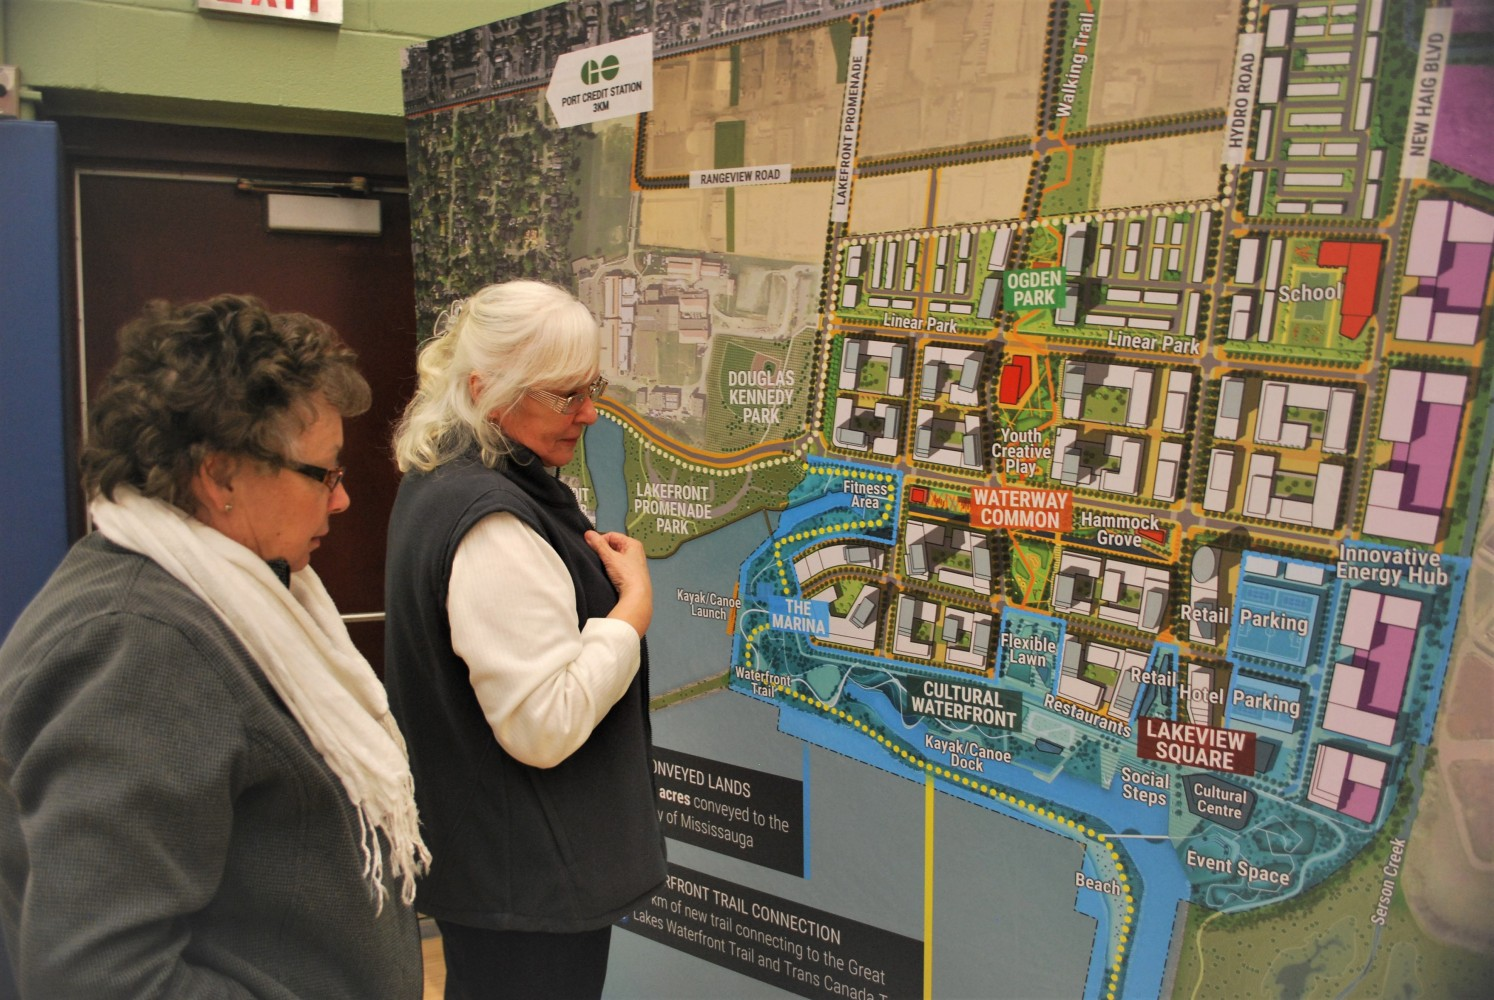 Residents still not convinced about benefits of Lakeview Village development